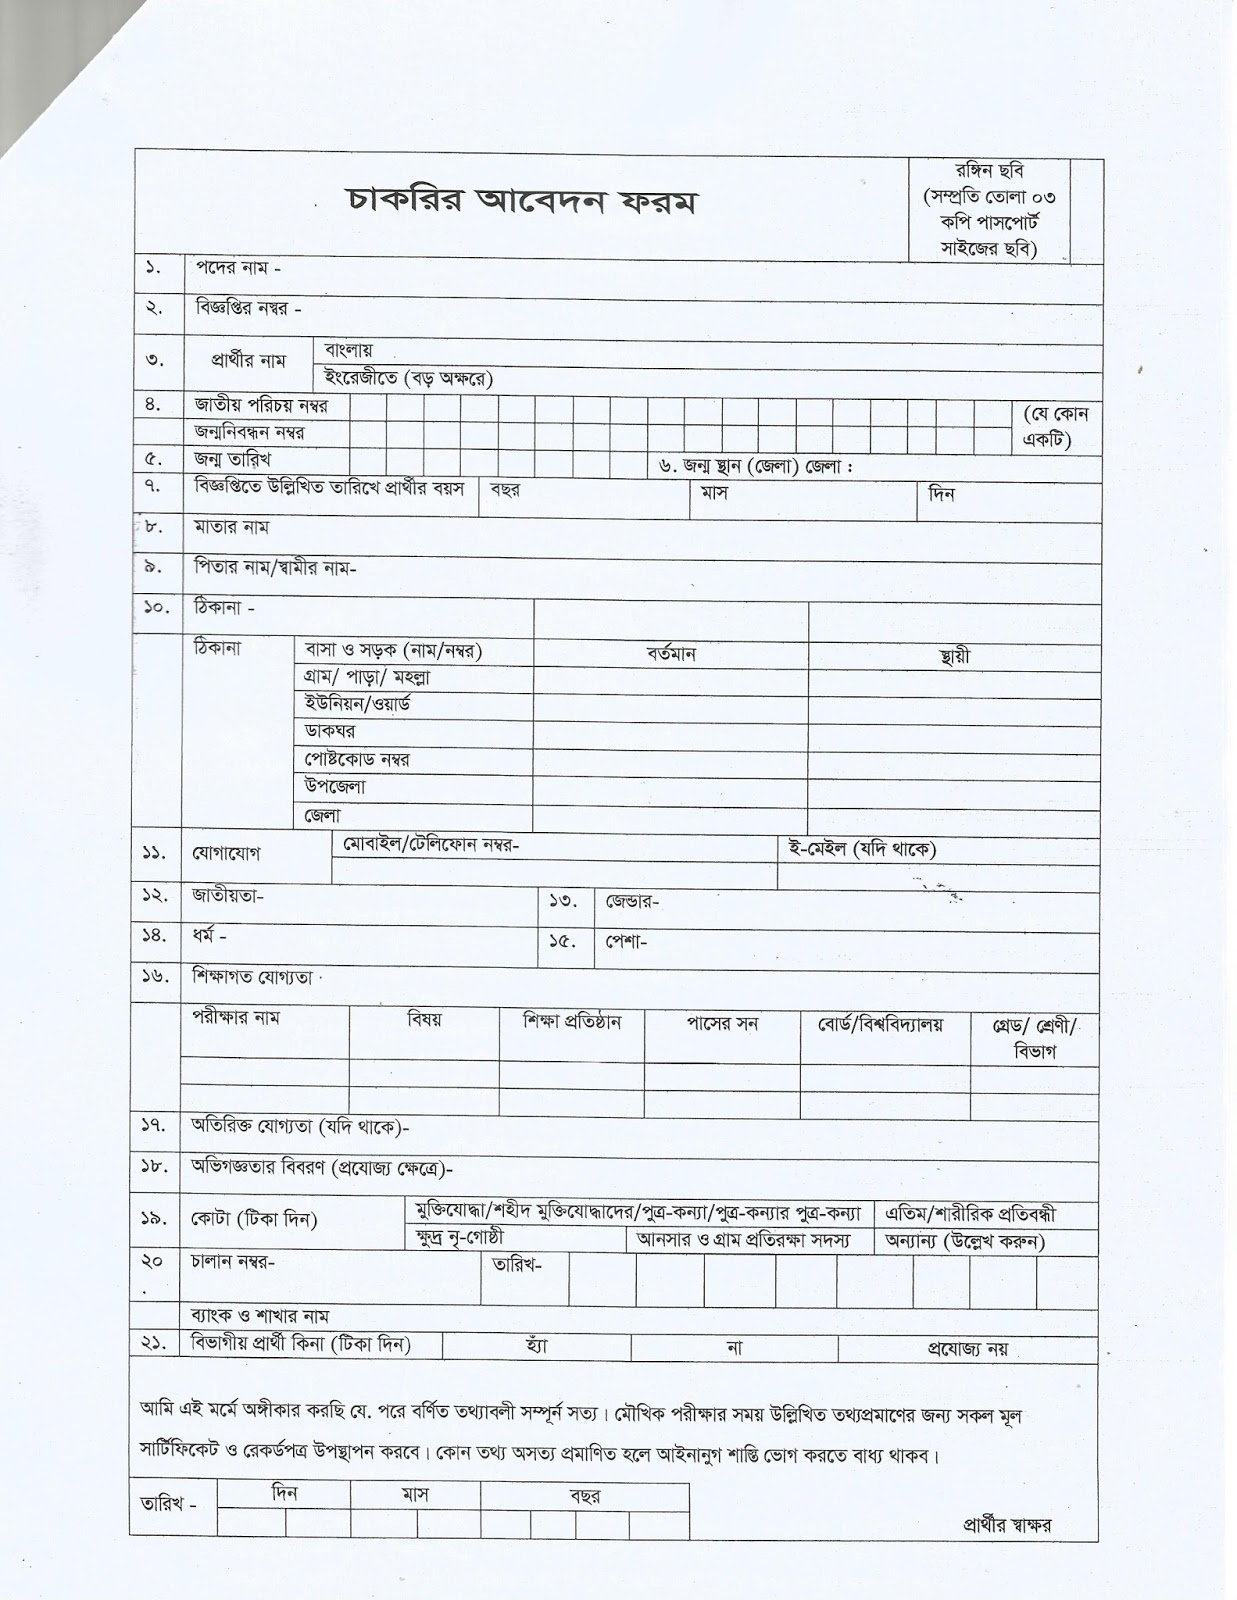 Barisal Collectorate School and college Job Application Form